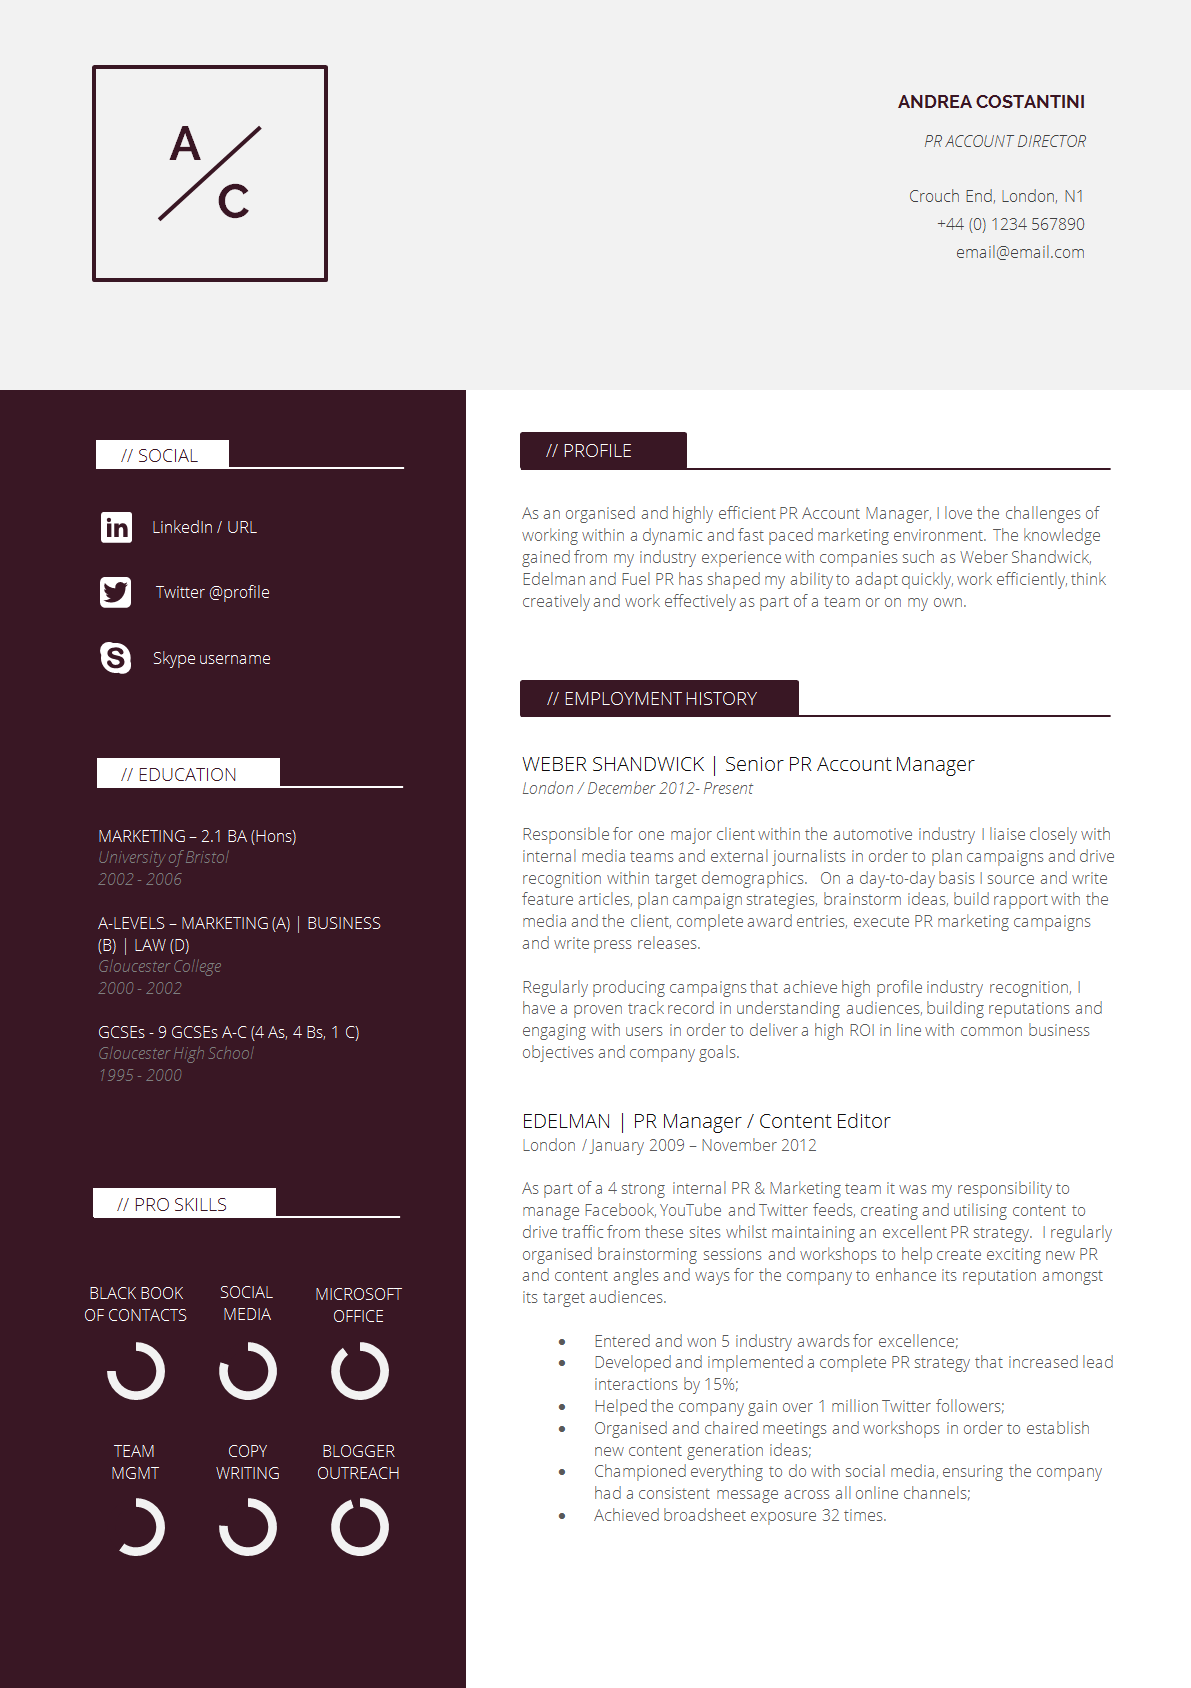 professional resume template cv template cover letter application advice creative cv ms word instant download westminster - Professional Cv Template